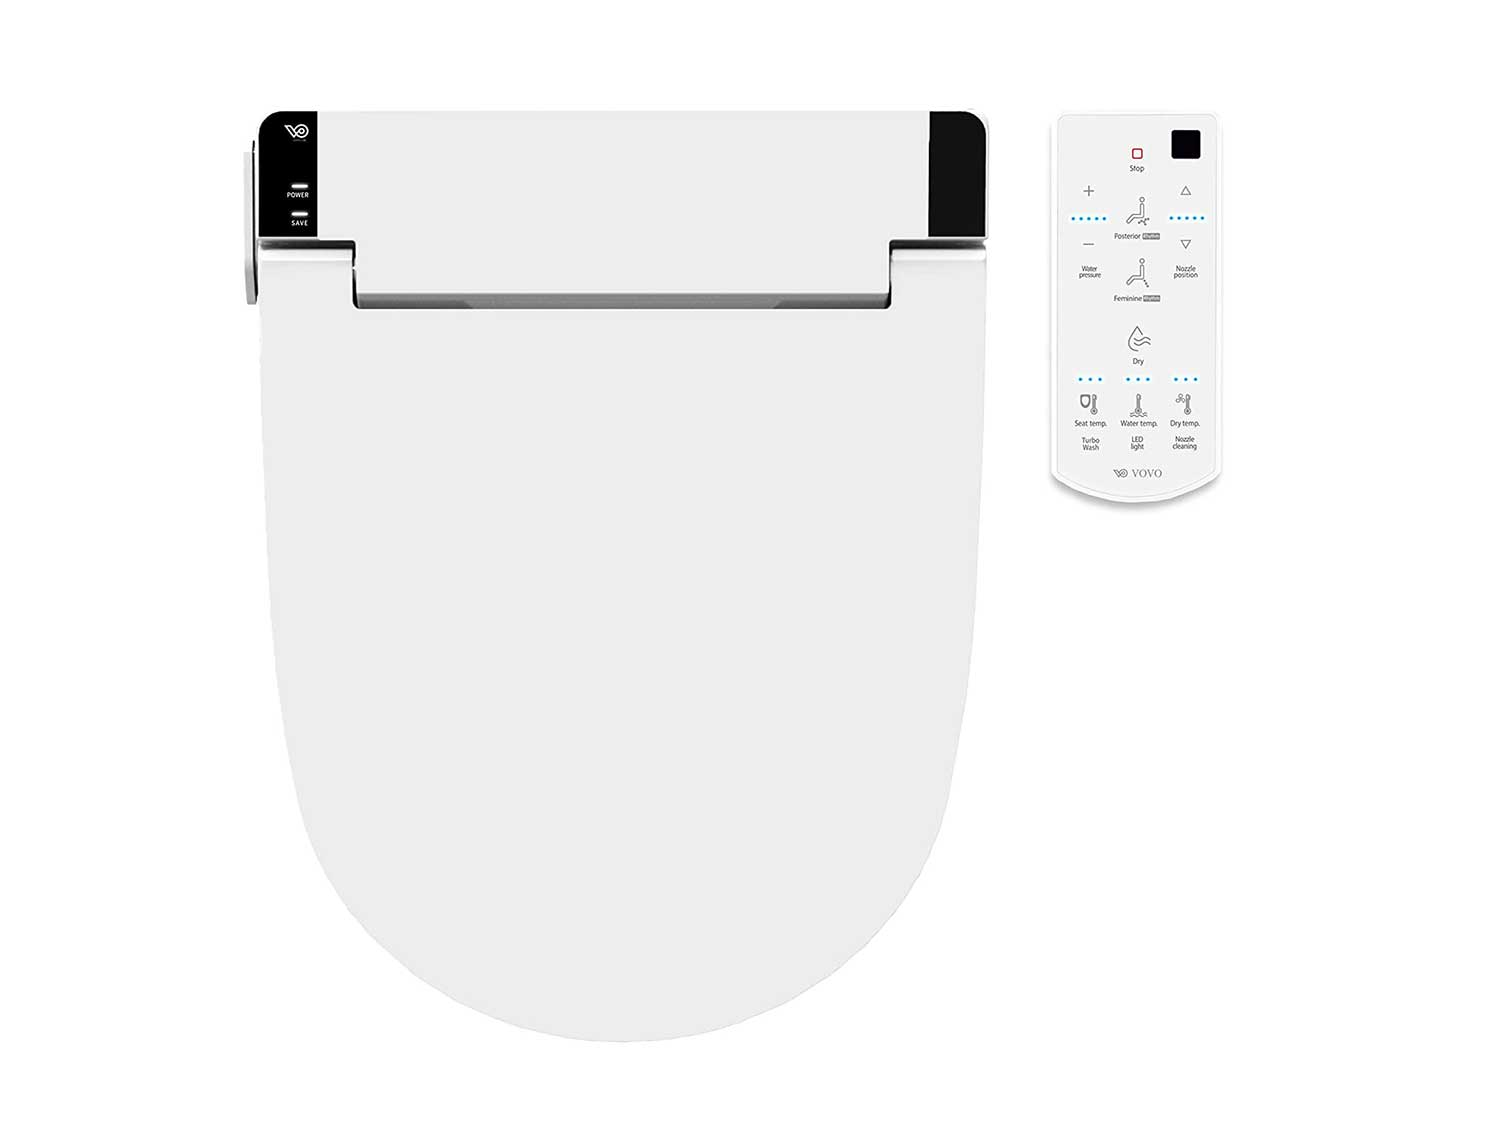 VOVO STYLEMENT VB-6100SR Electronic Bidet Seat, Round, Easy Install, Heated Seat, Warm Dry and Water, LED Nightlight, Eco Power Save,Self Cleaning Full Stainless Nozzle, Made in Korea - White